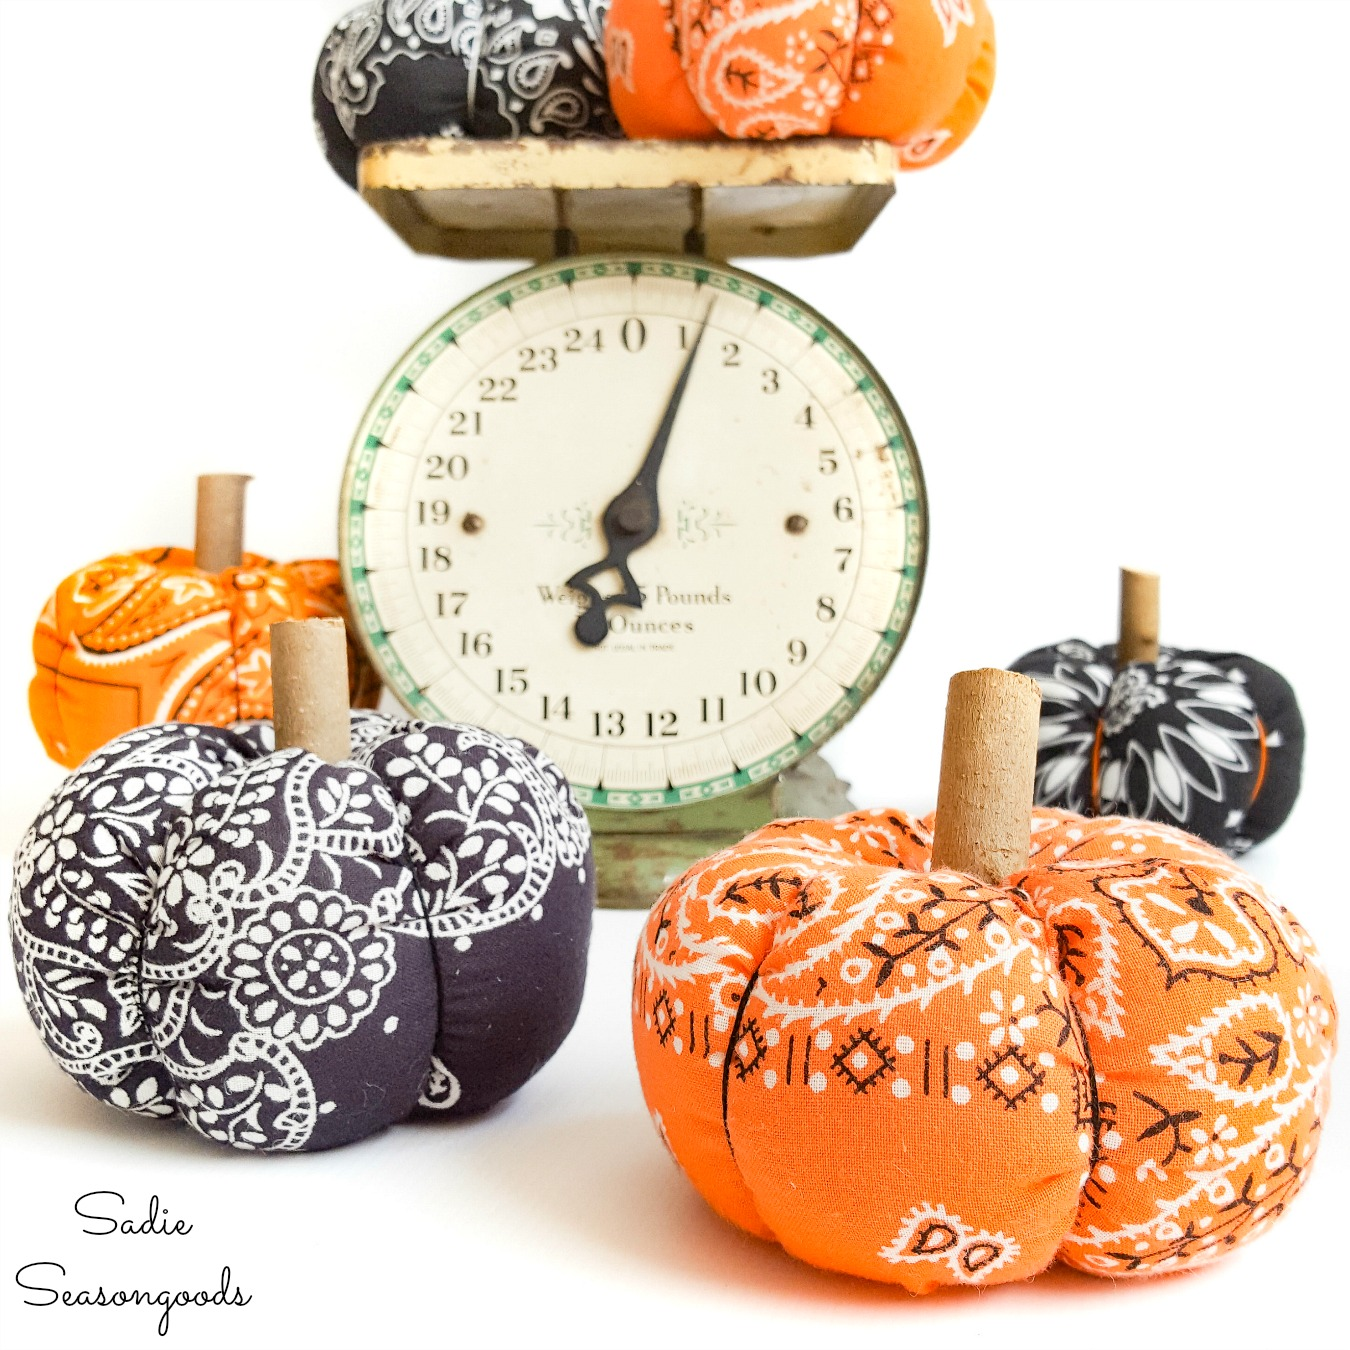 Fabric Pumpkins from a Halloween Bandana for Rustic Fall Decor